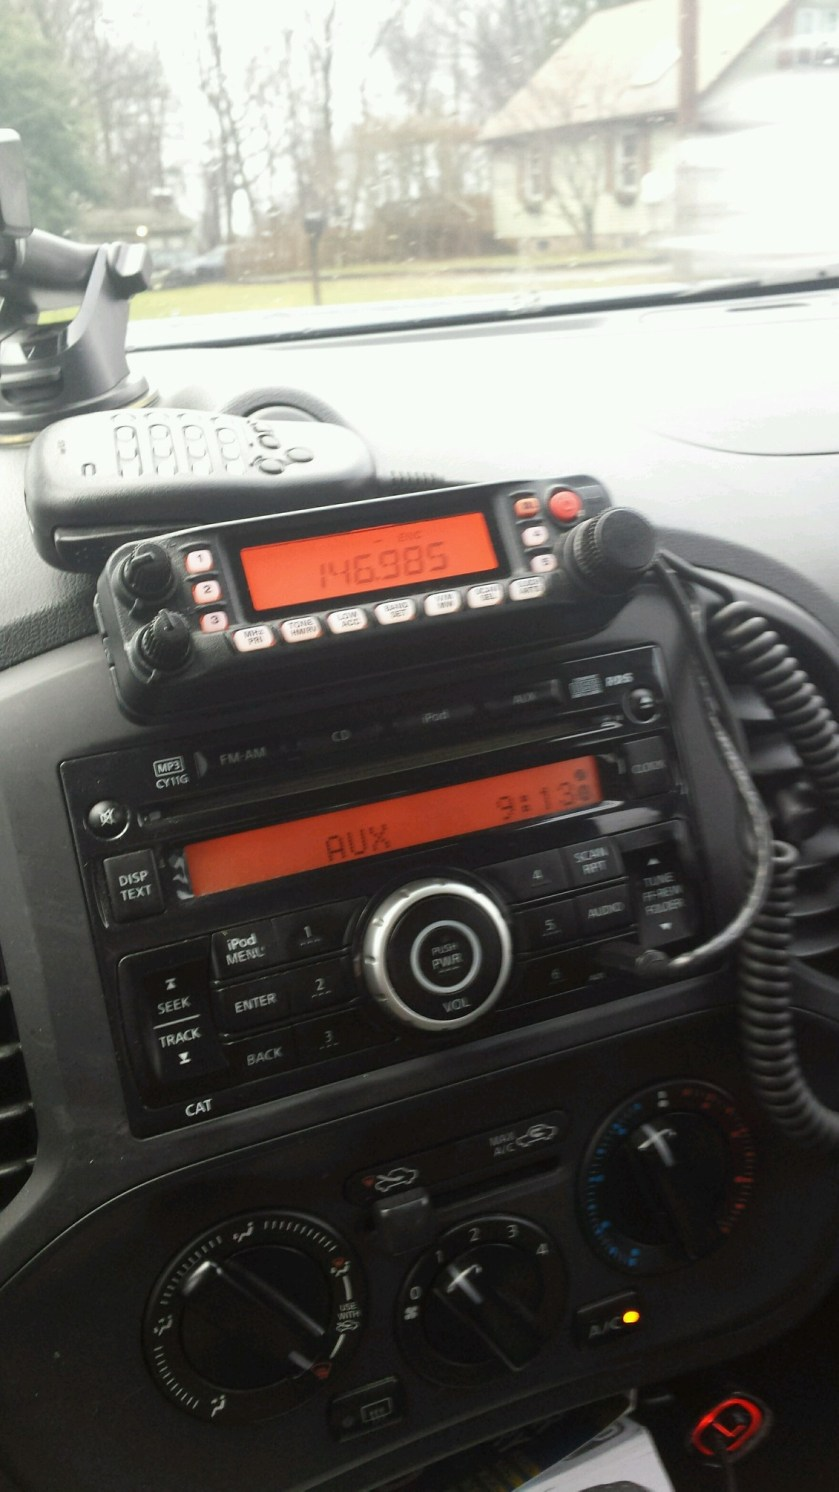 Mobile Stations of 985 / Mobile Ham Radio Install Pics